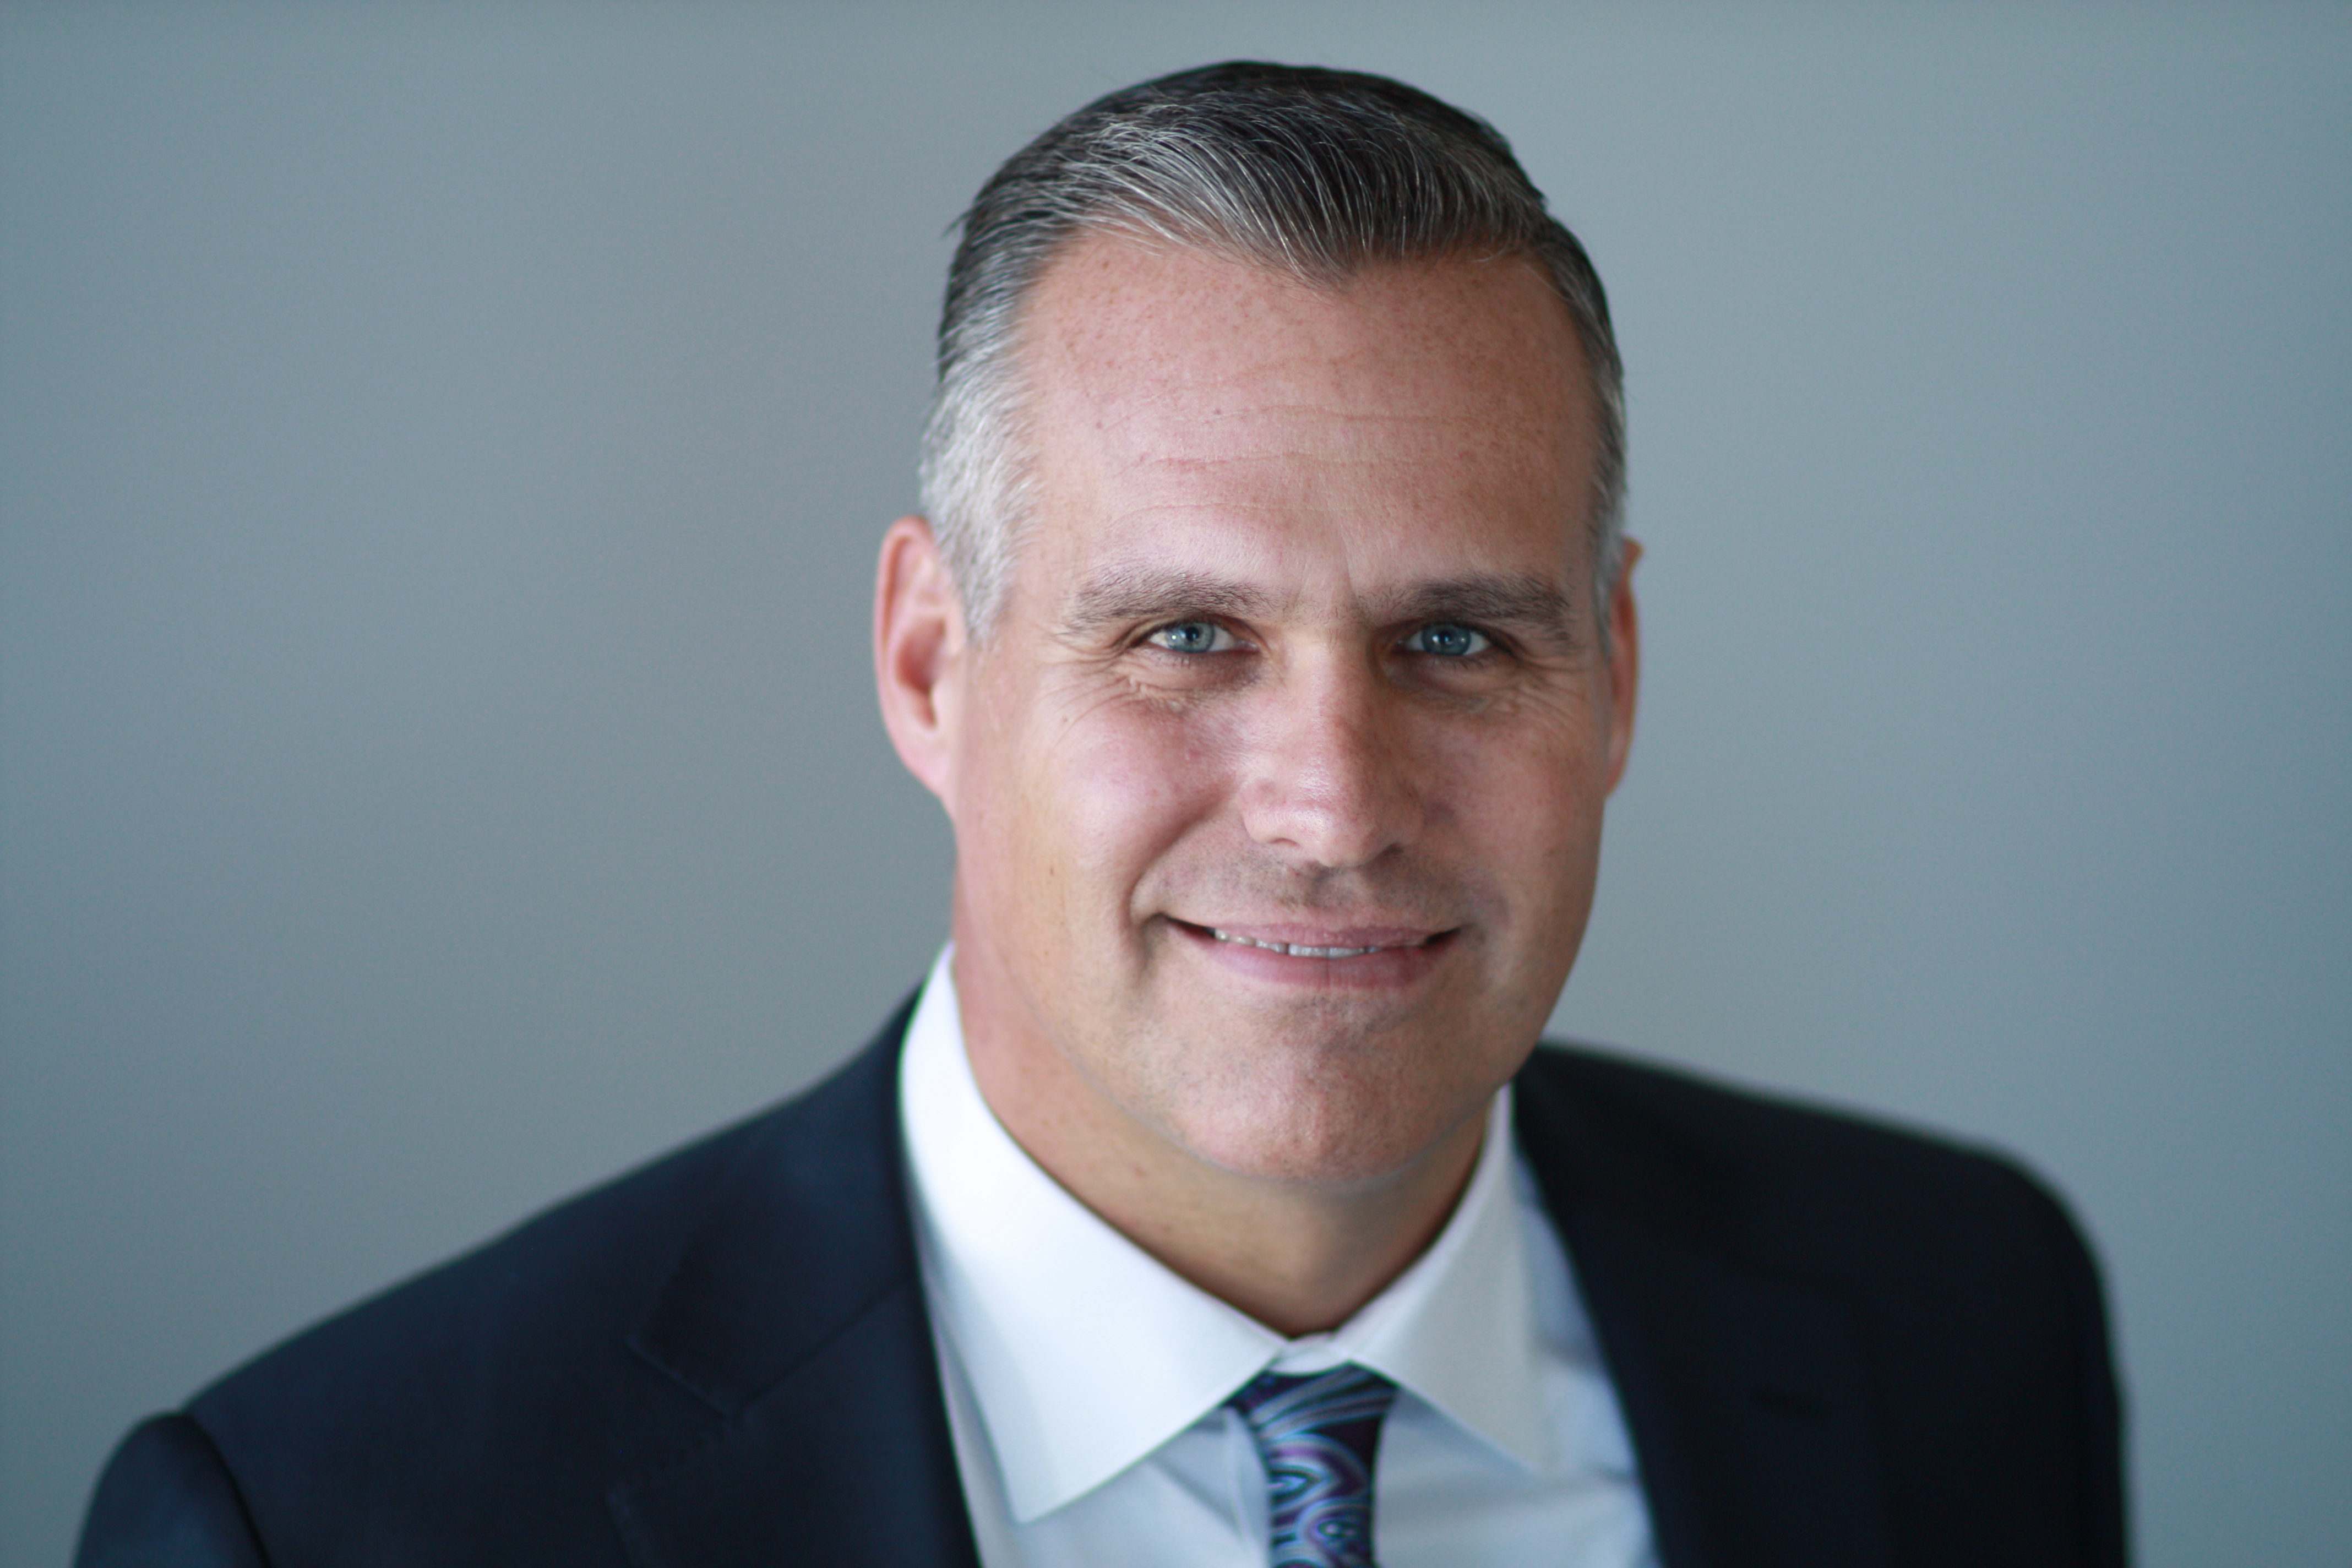 Justin Nielsen, CEO and Founder of Onset Financial (Photo: Business Wire)